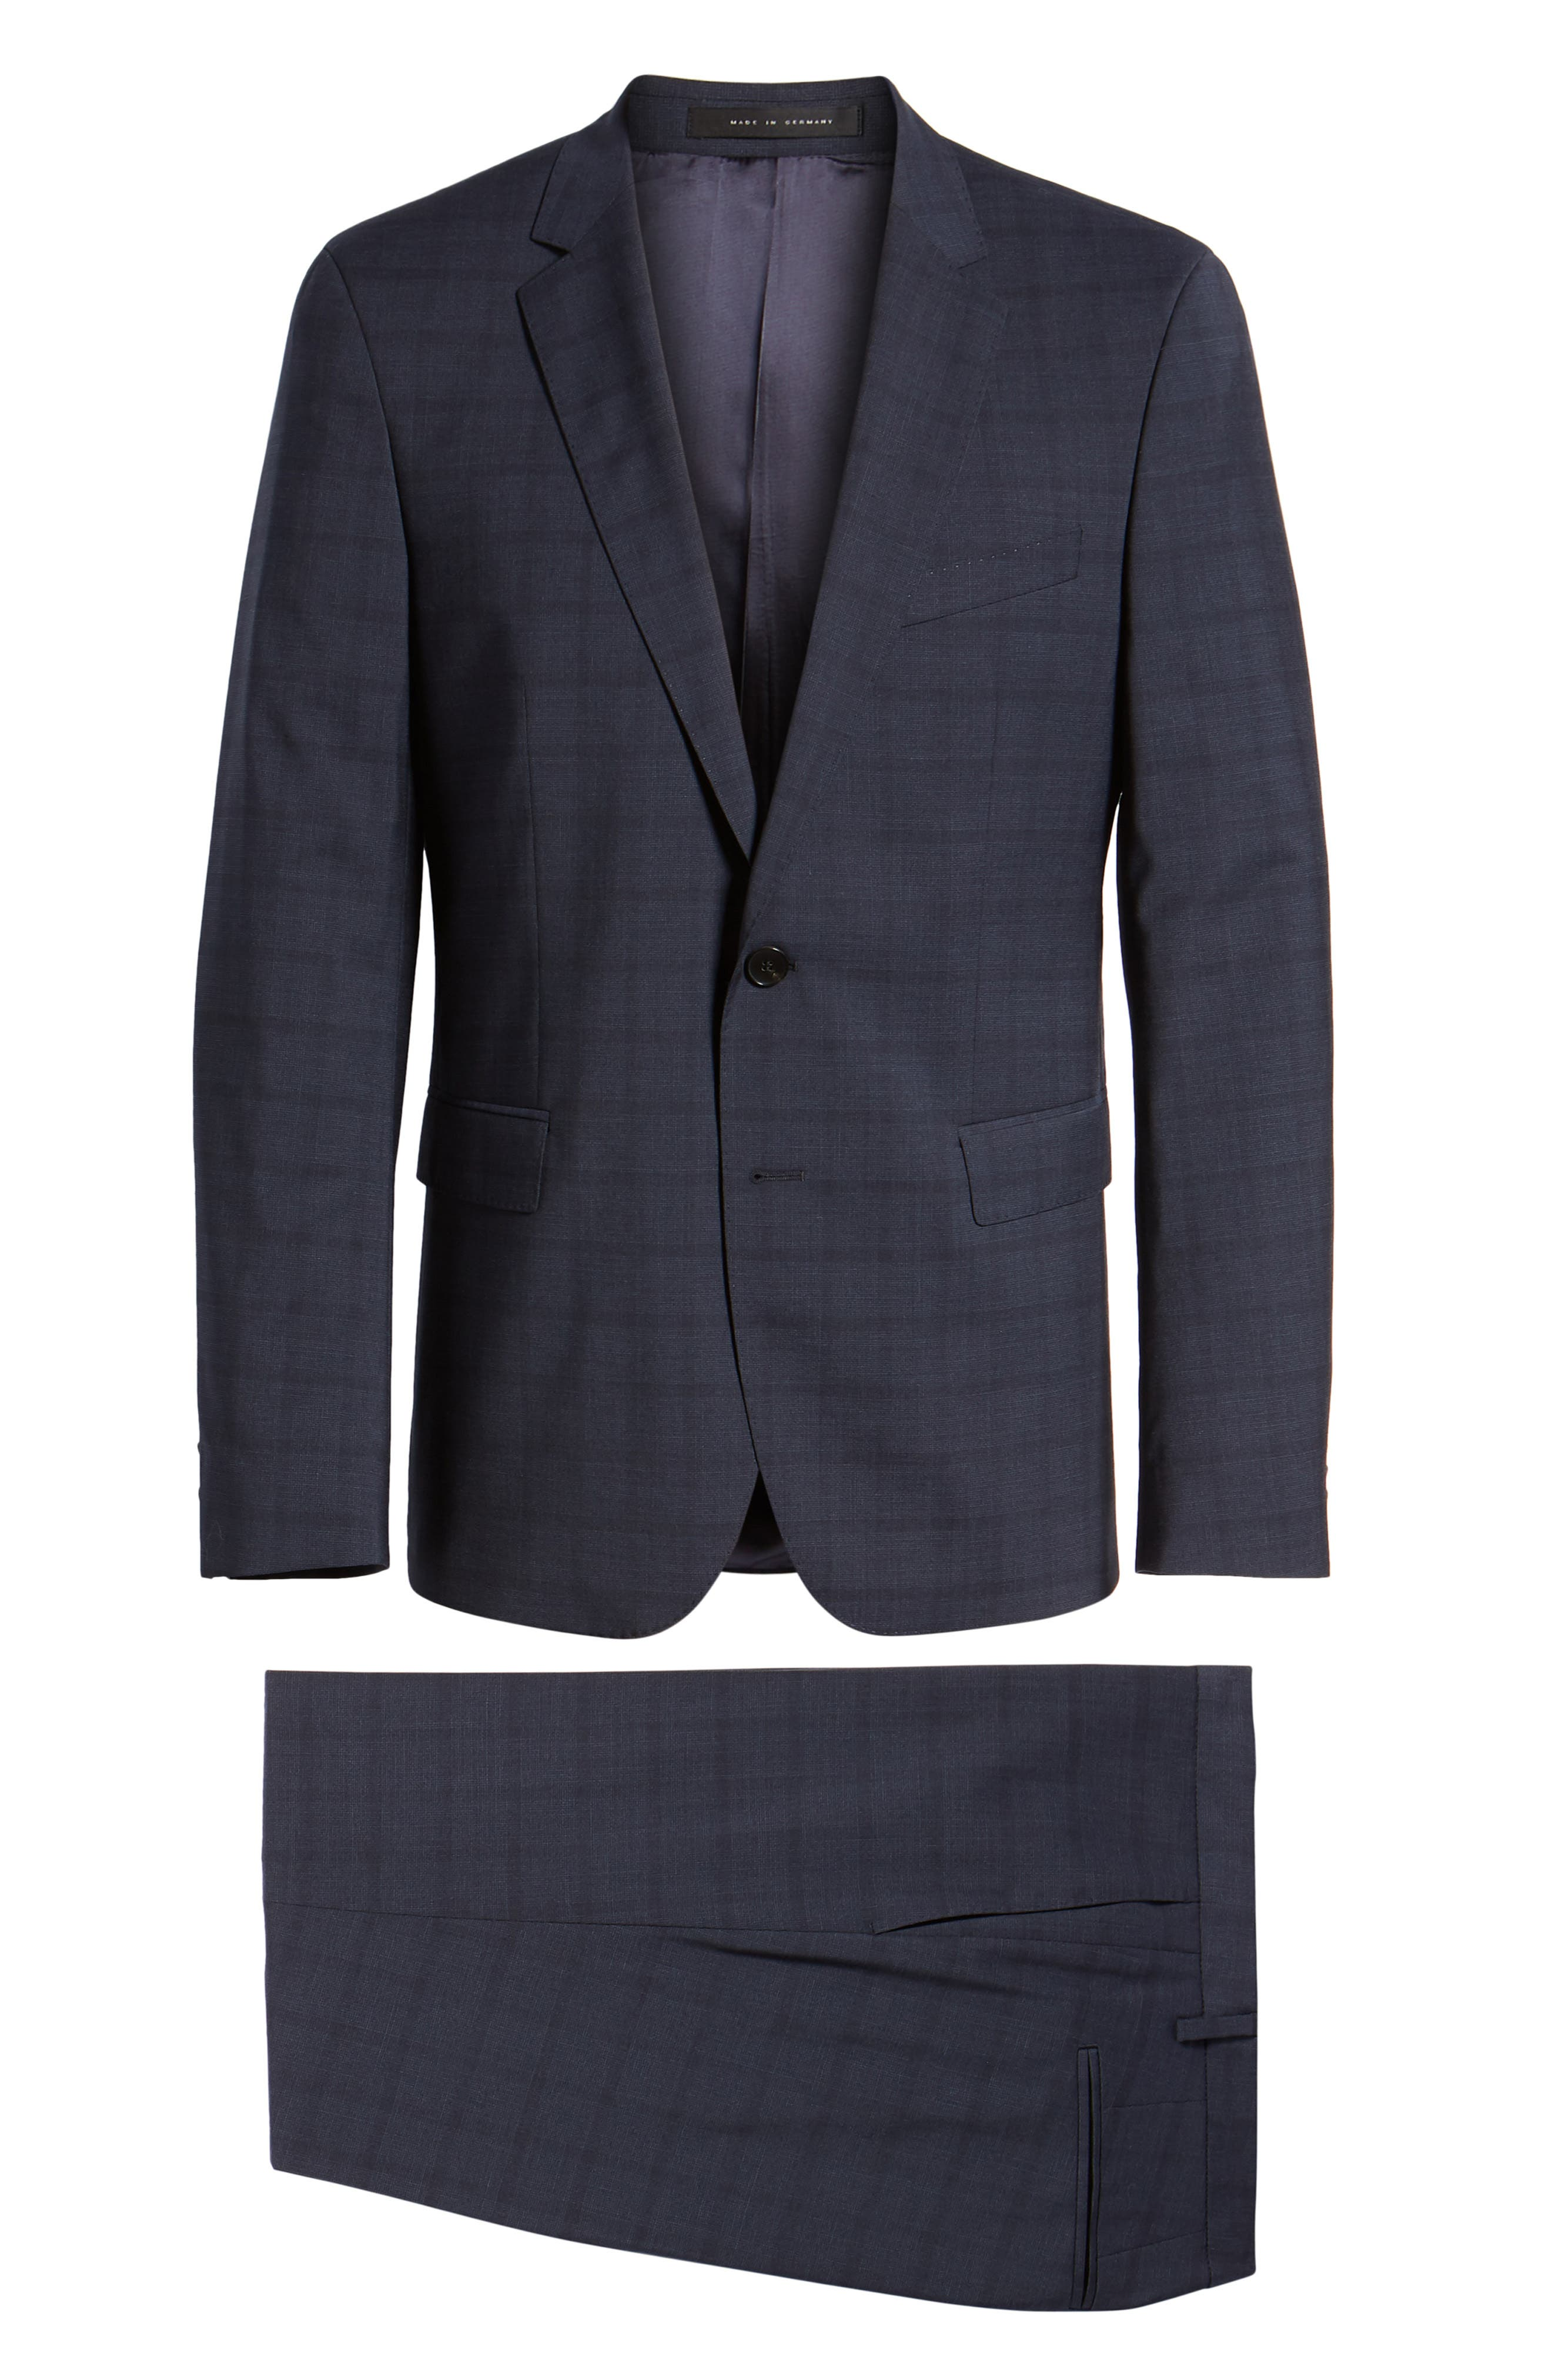 Ryan/Win Extra Trim Fit Windowpane Wool Suit,                             Alternate thumbnail 8, color,                             BLUE